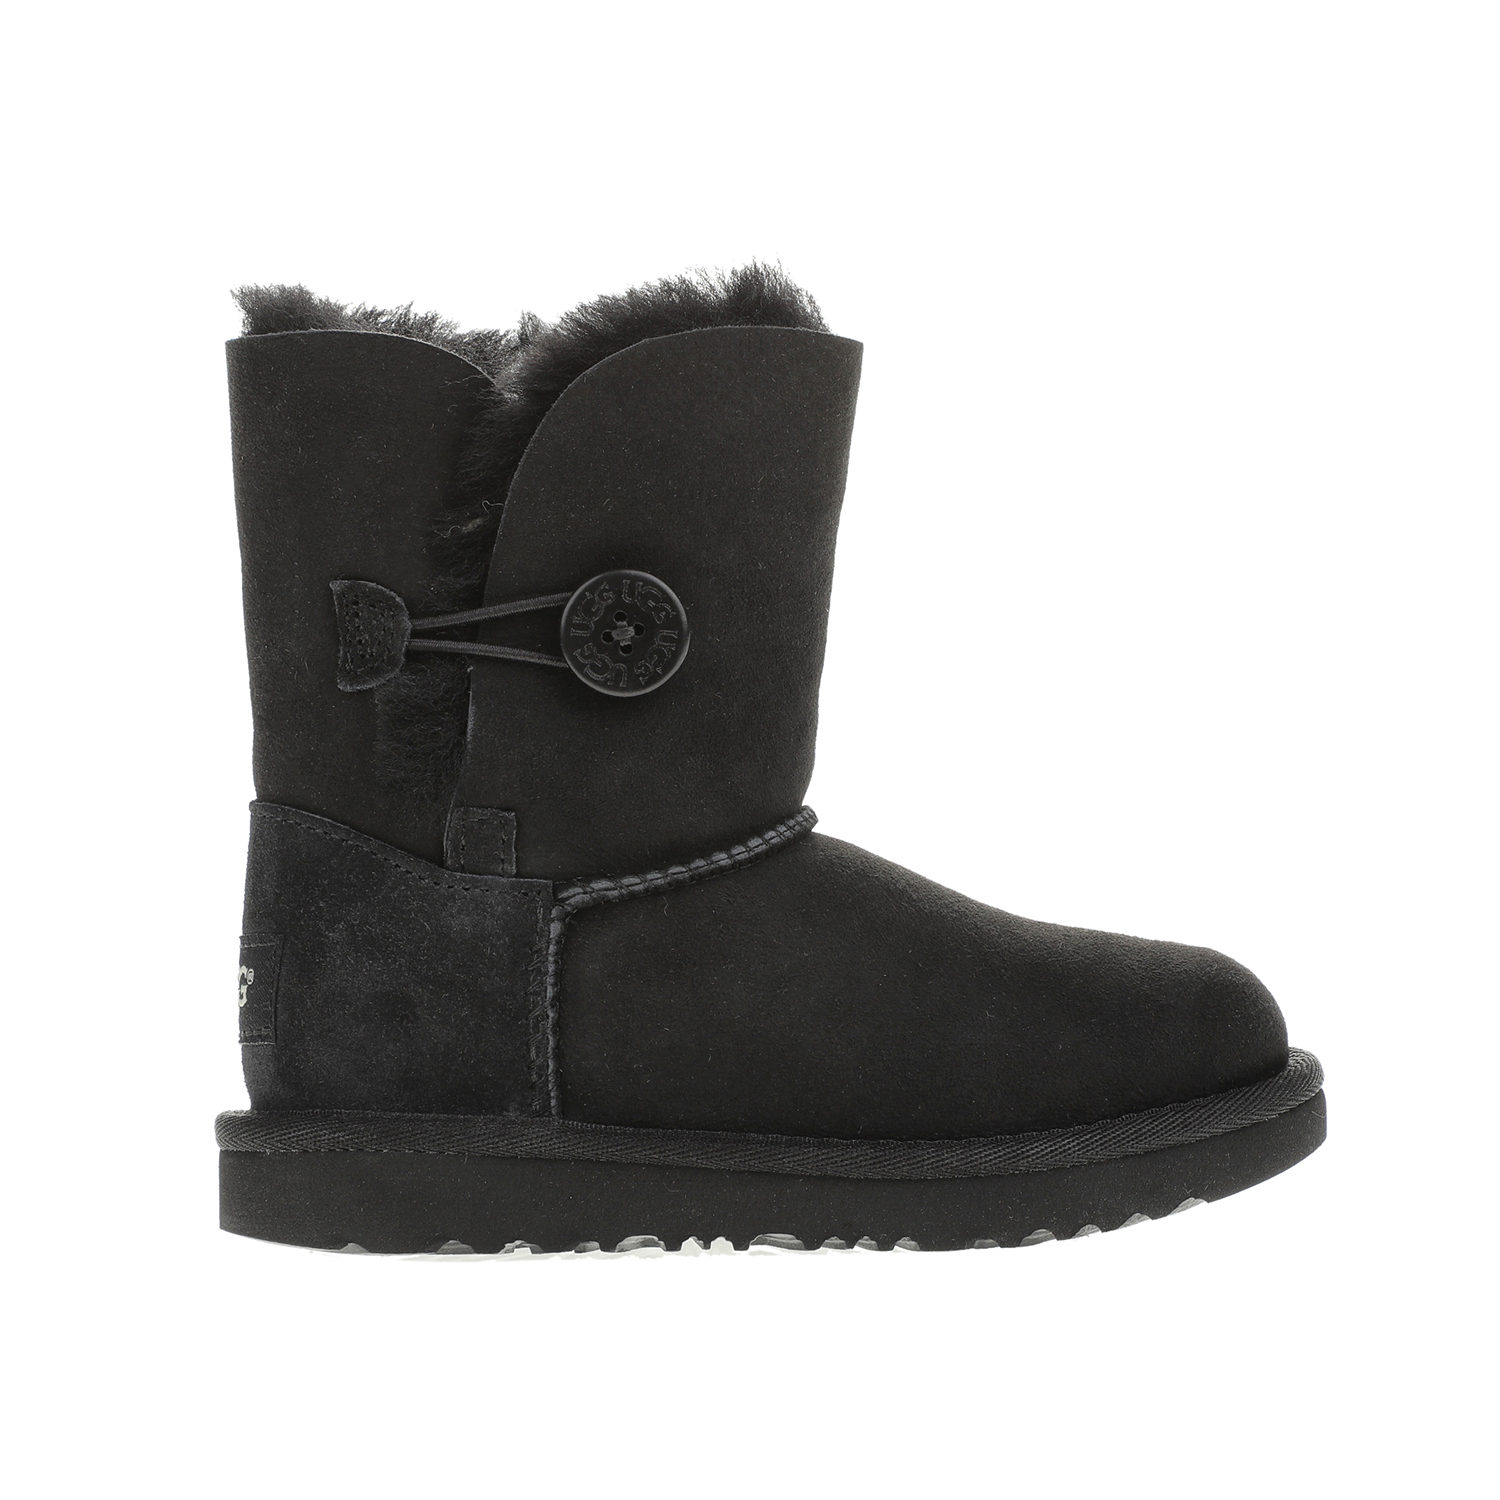 UGG – Κοριτσίστικα μποτάκια UGG BAILEY BUTTON II STARS μαύρα